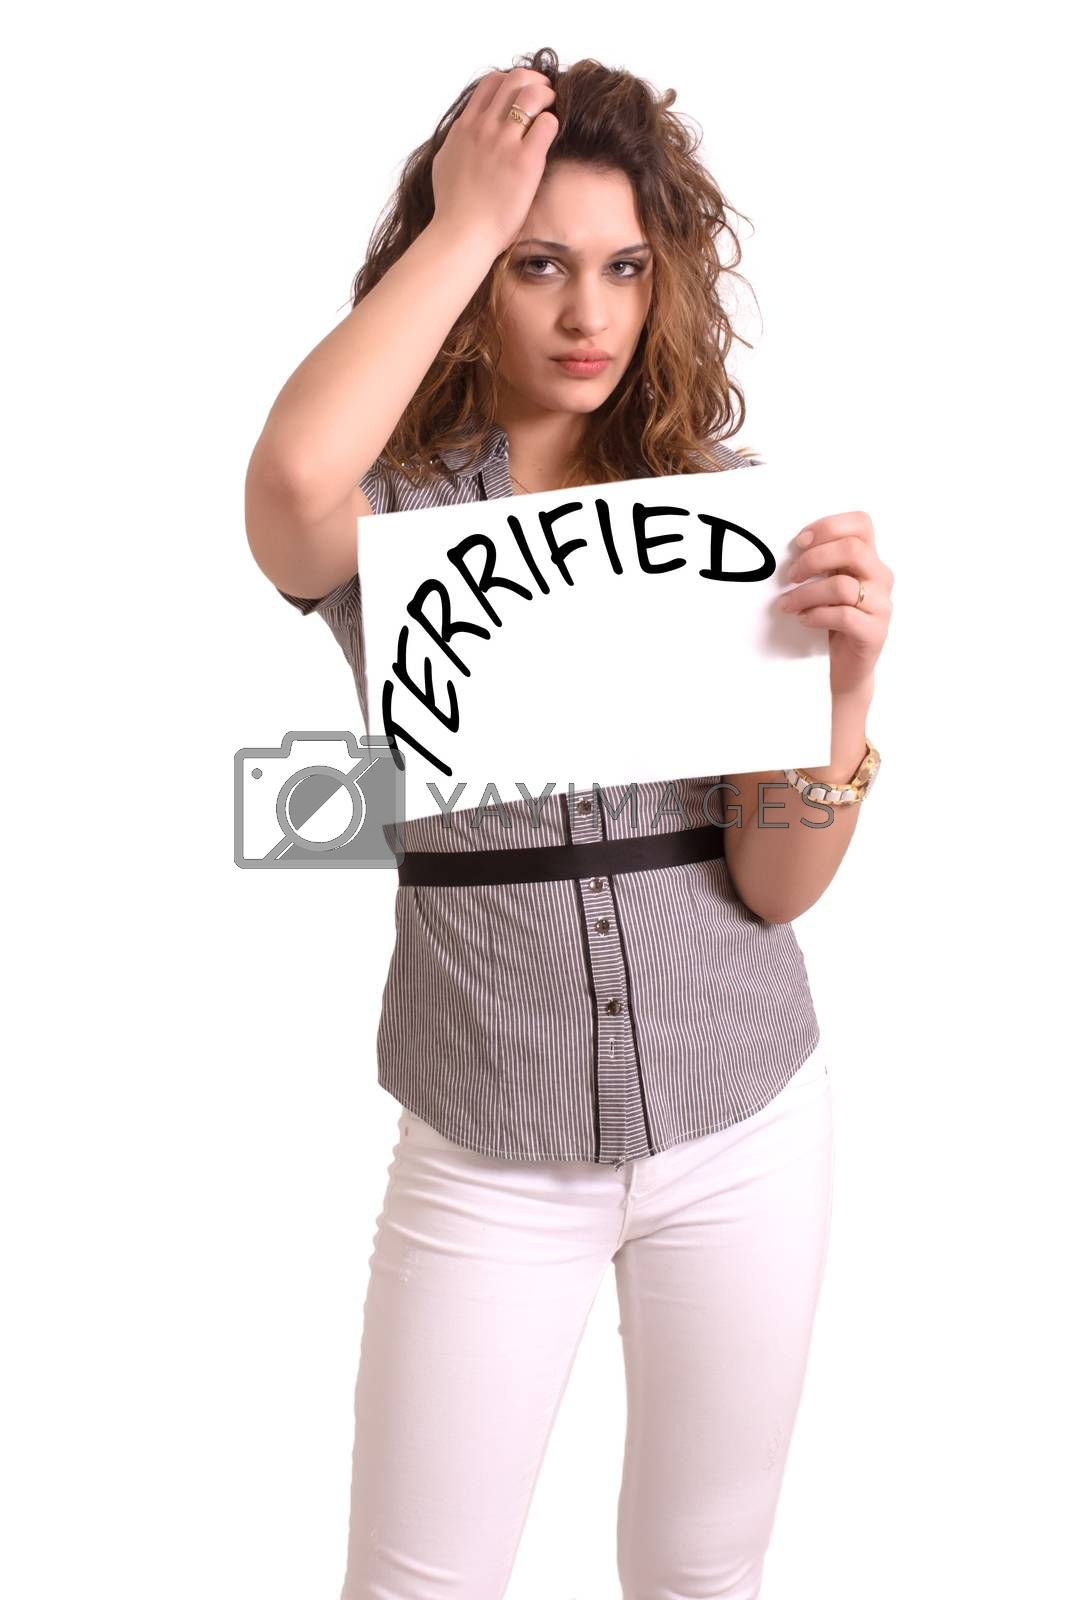 Royalty free image of uncomfortable woman holding paper with Terrified text by vepar5